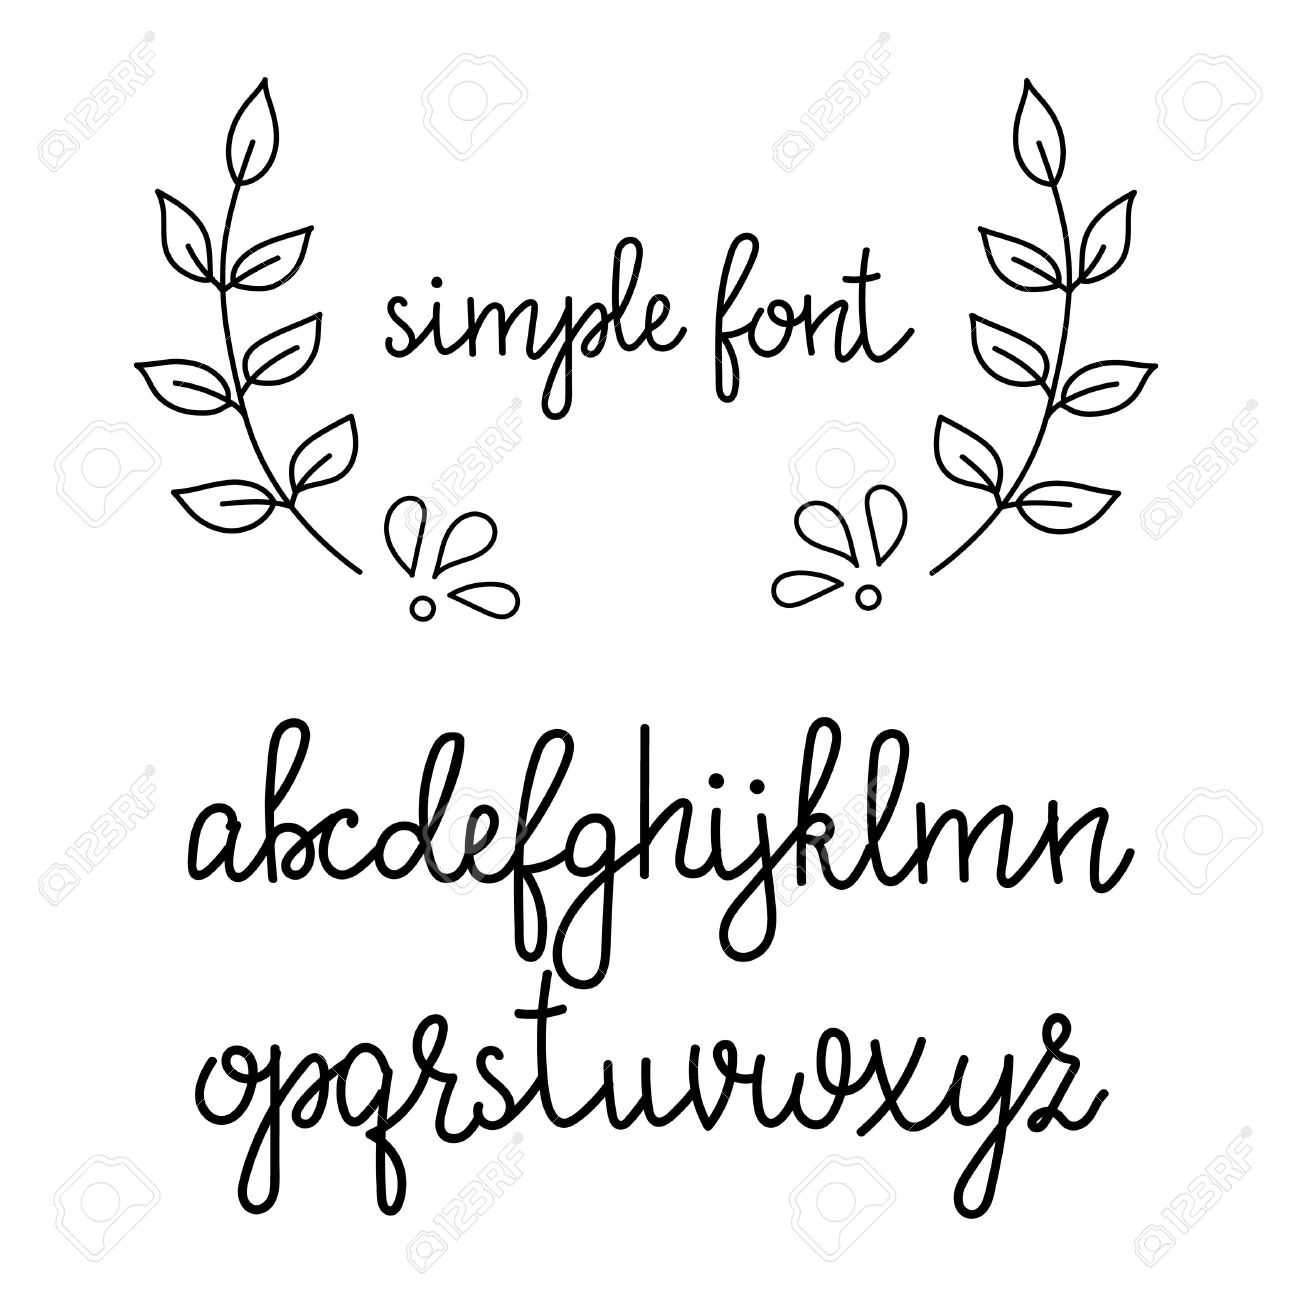 Worksheets Wmeasy Cursive simple handwritten pointed pen calligraphy cursive font alphabet cute letters isolated